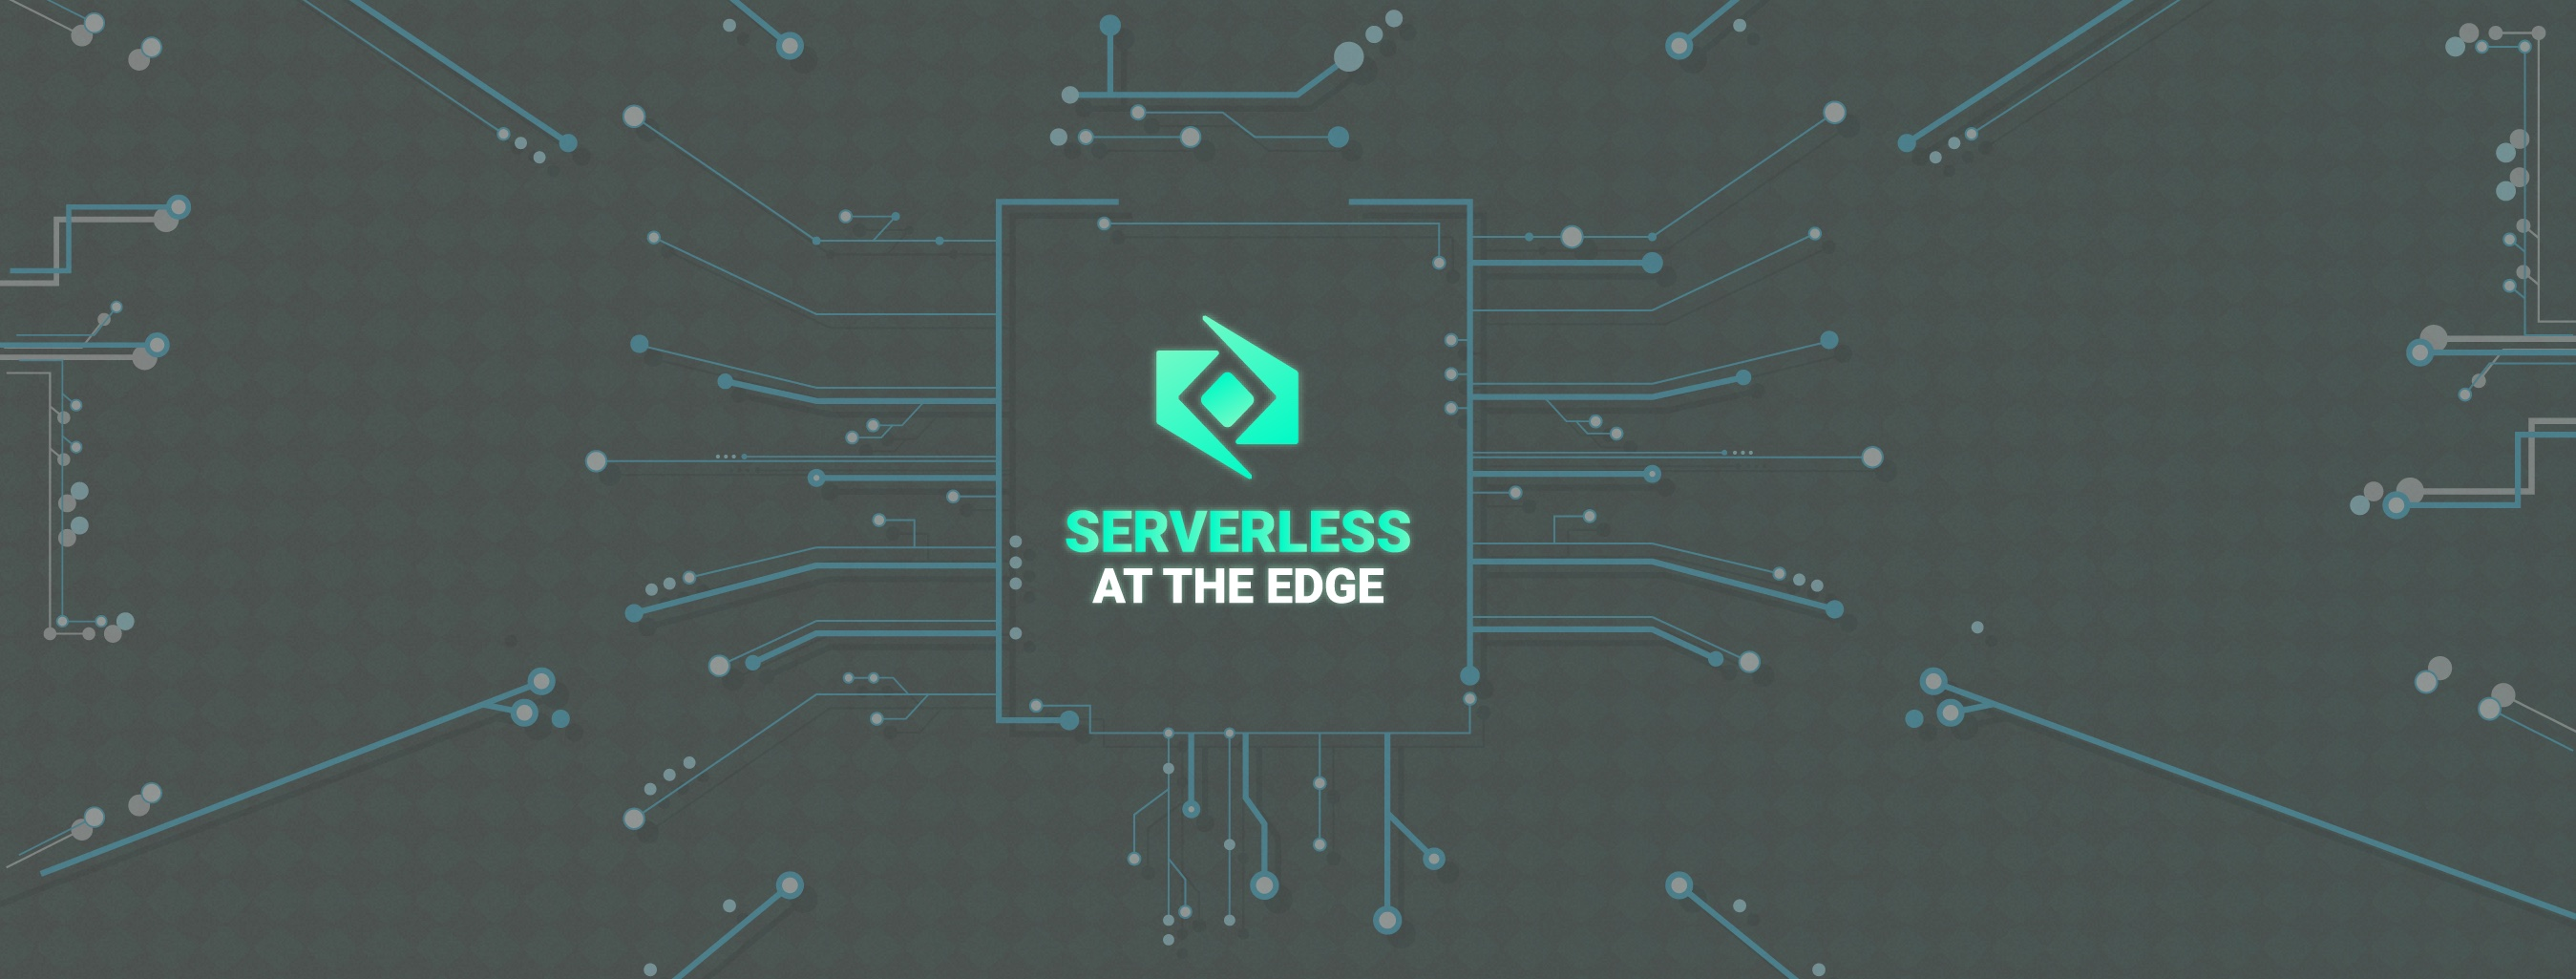 Serverless at the Edge and Local Compute